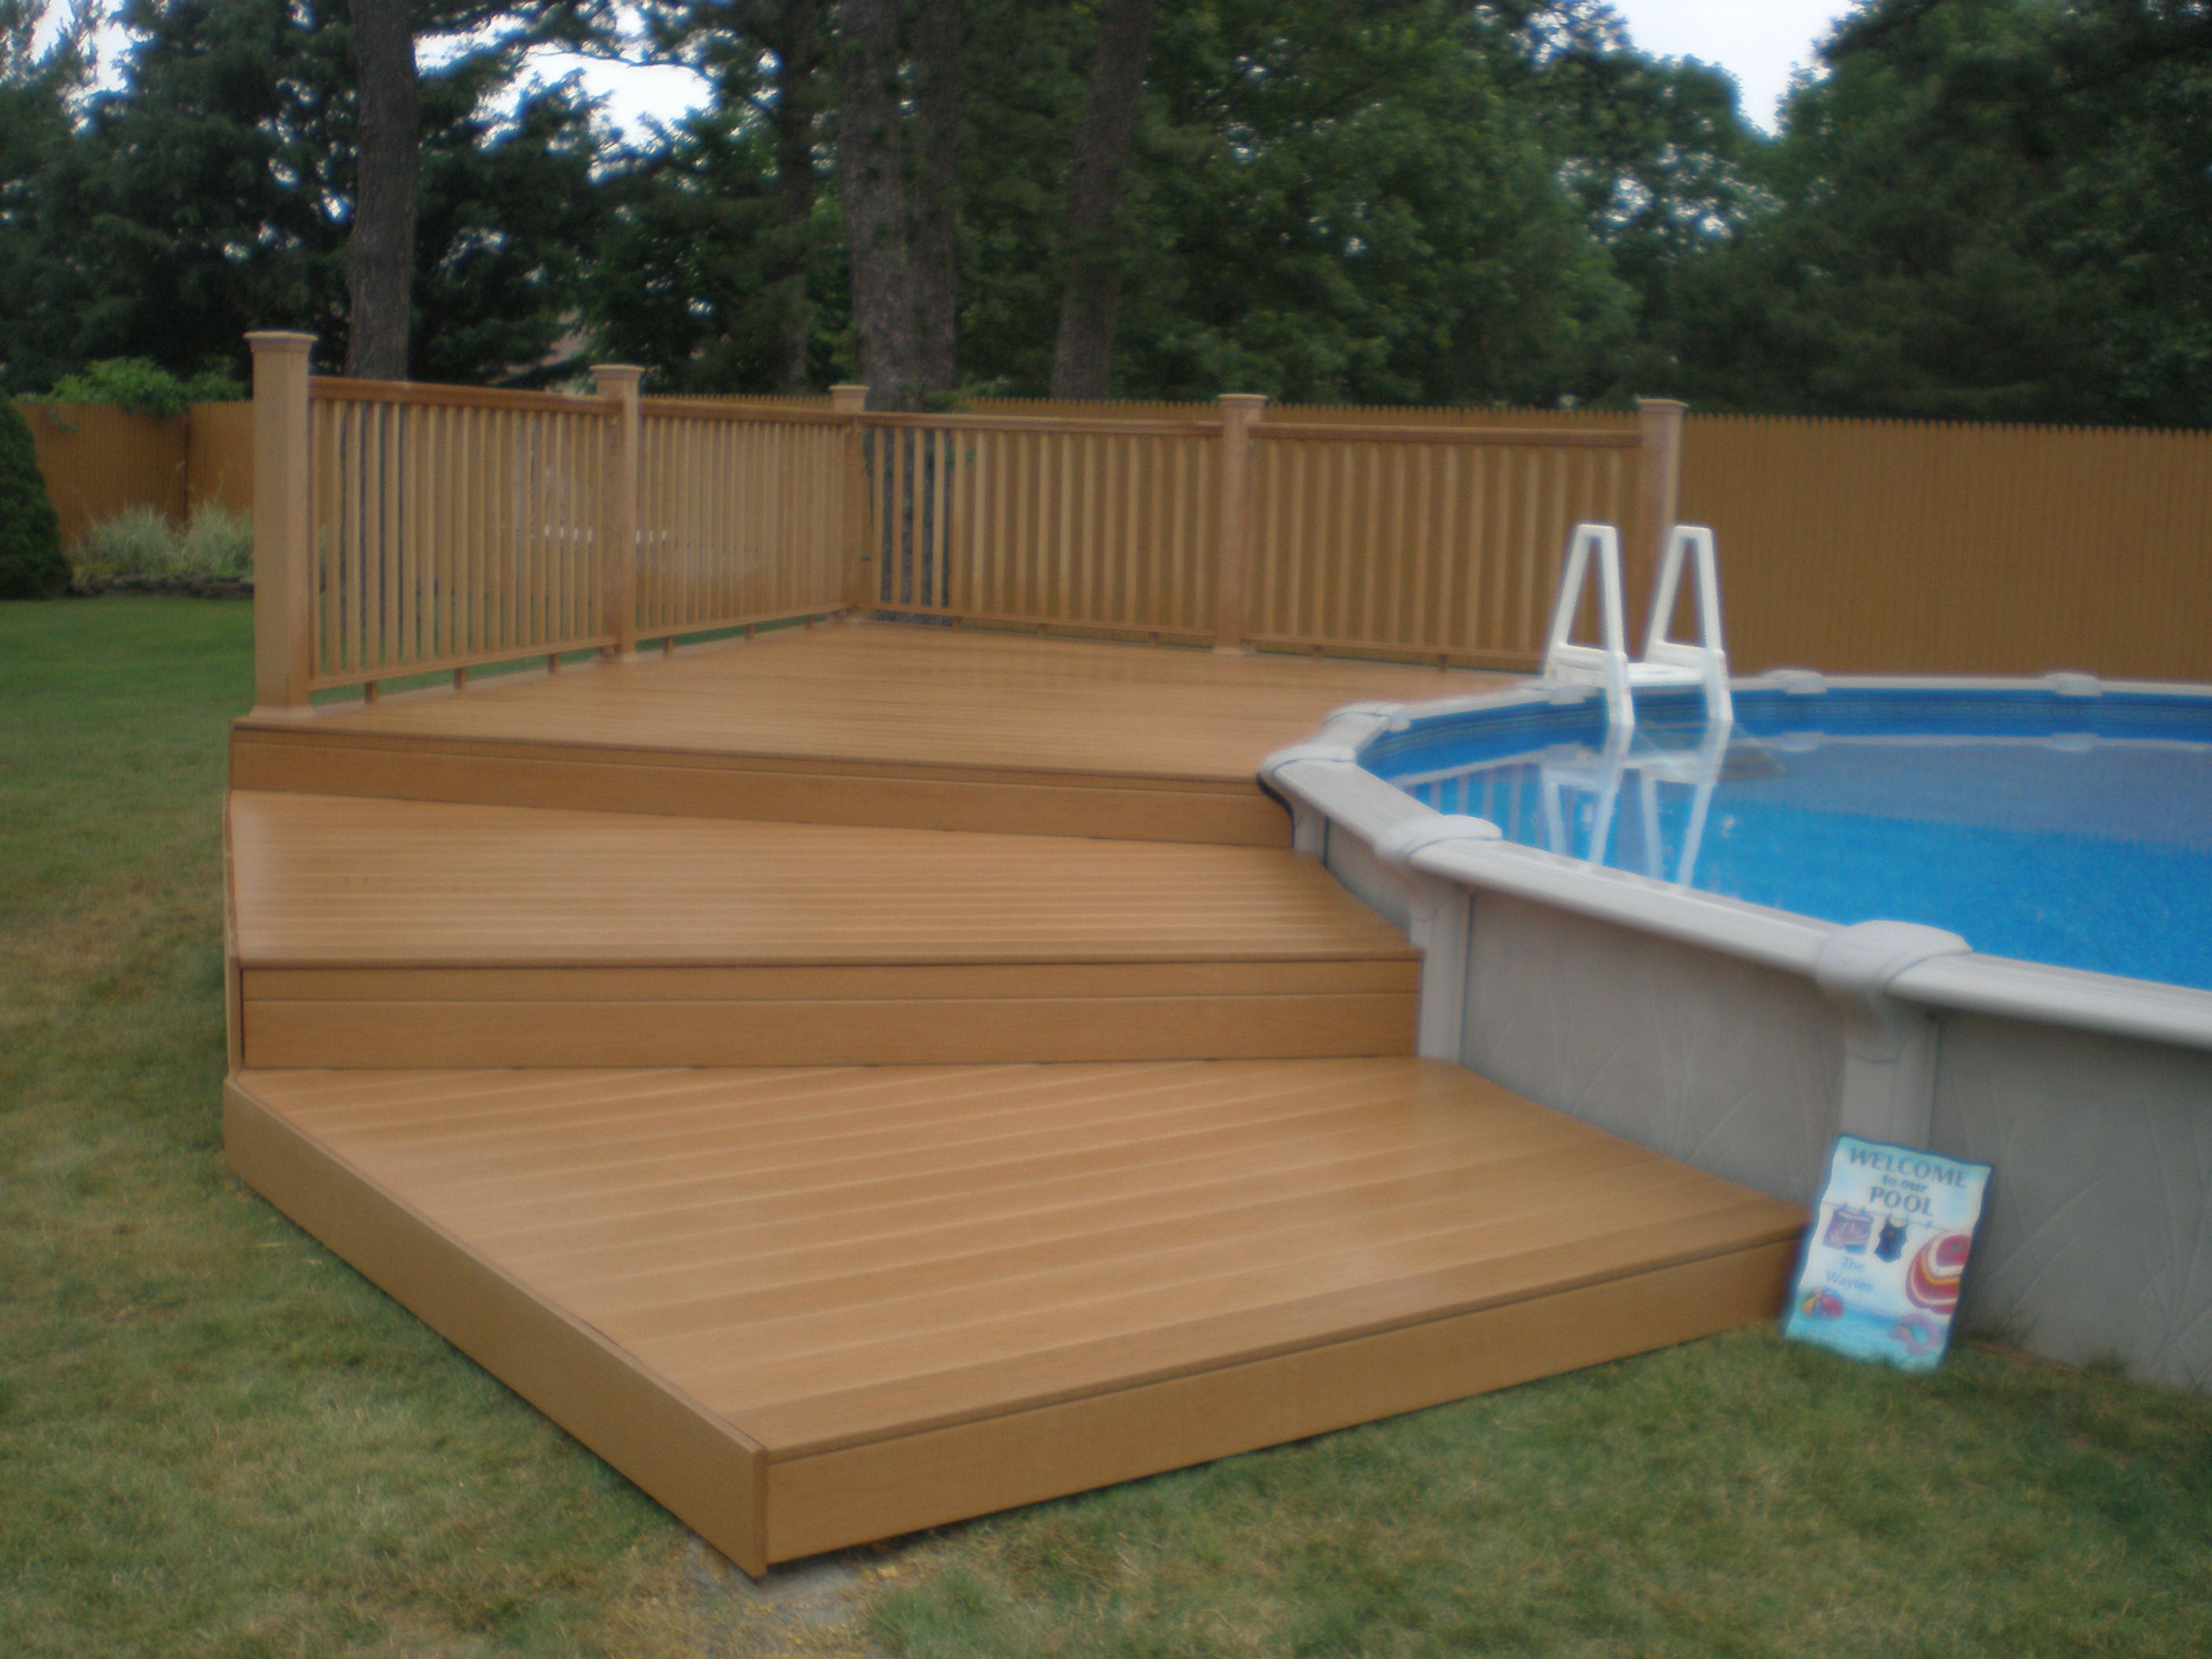 Sharkline pool with deck brothers 3 pools aboveground - Above ground pool deck ideas on a budget ...